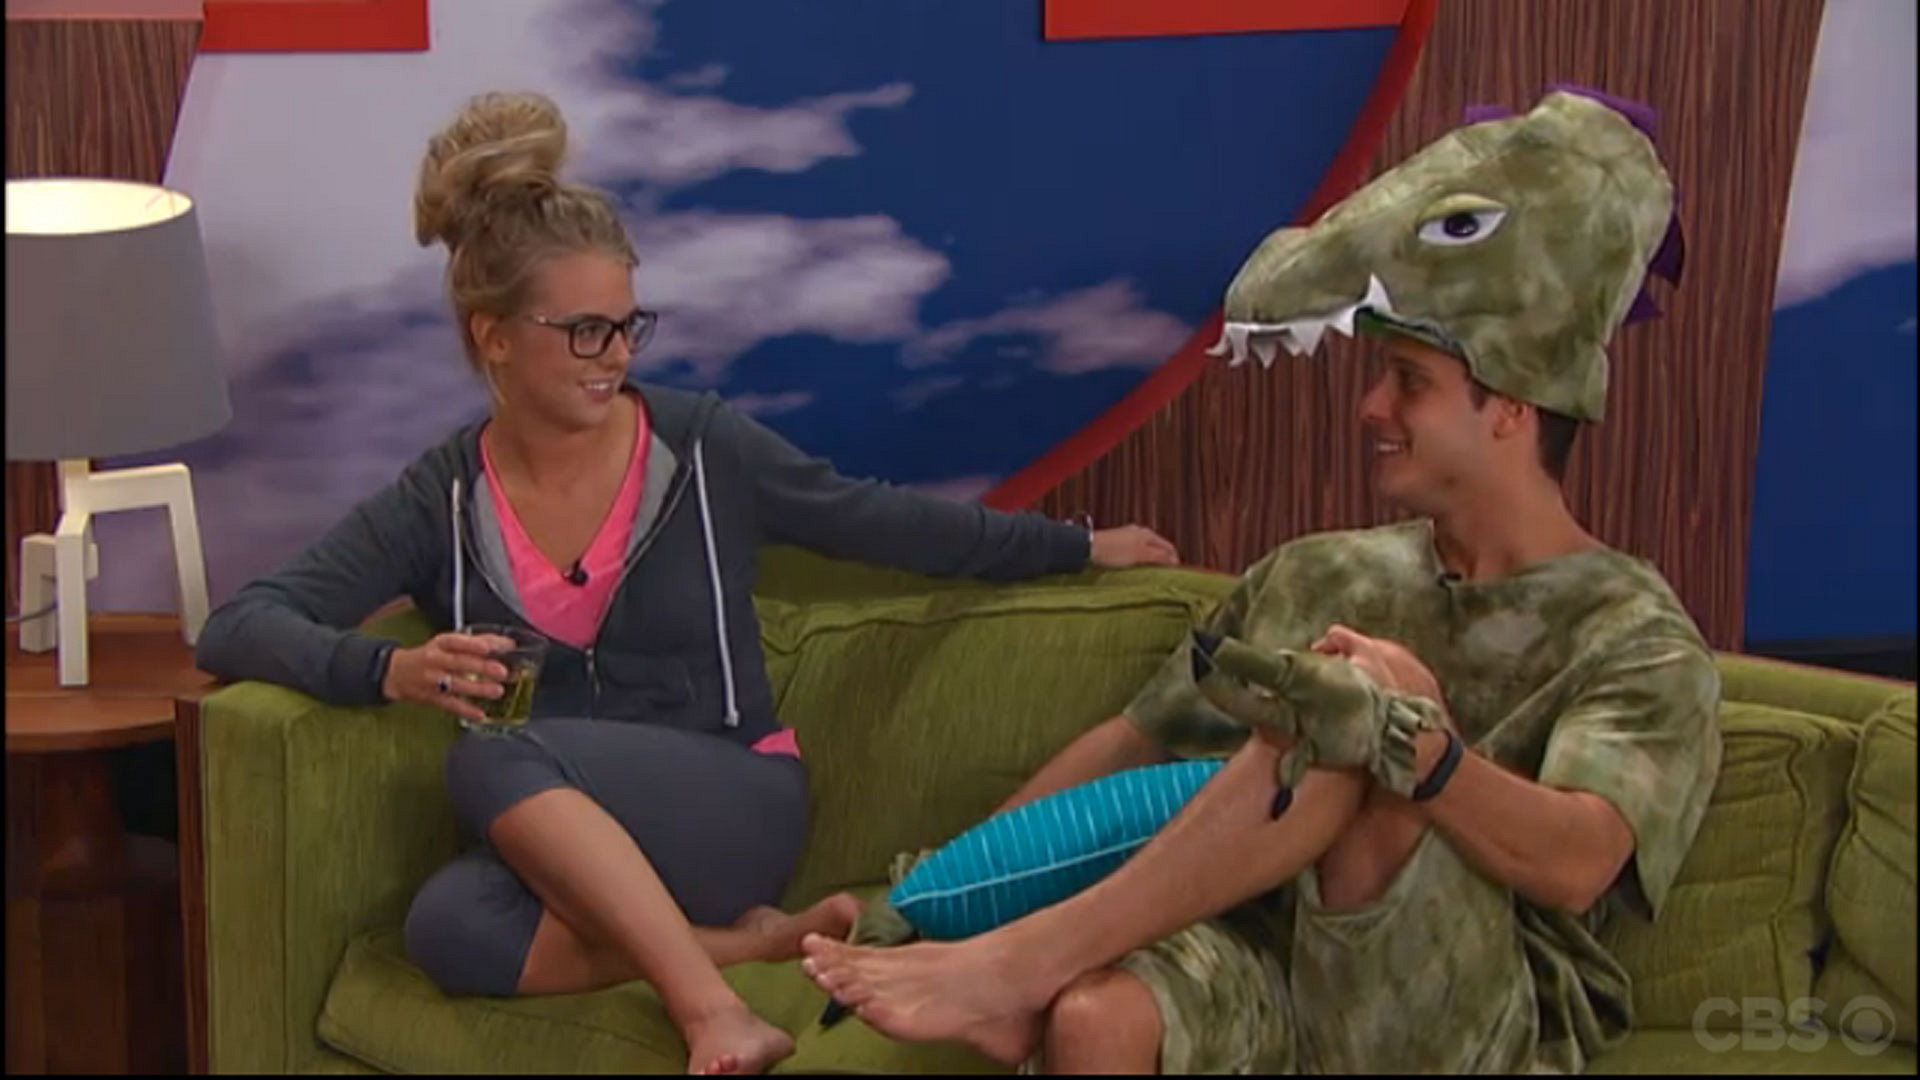 4. Cody is stunned Nicole is in another showmance this season.